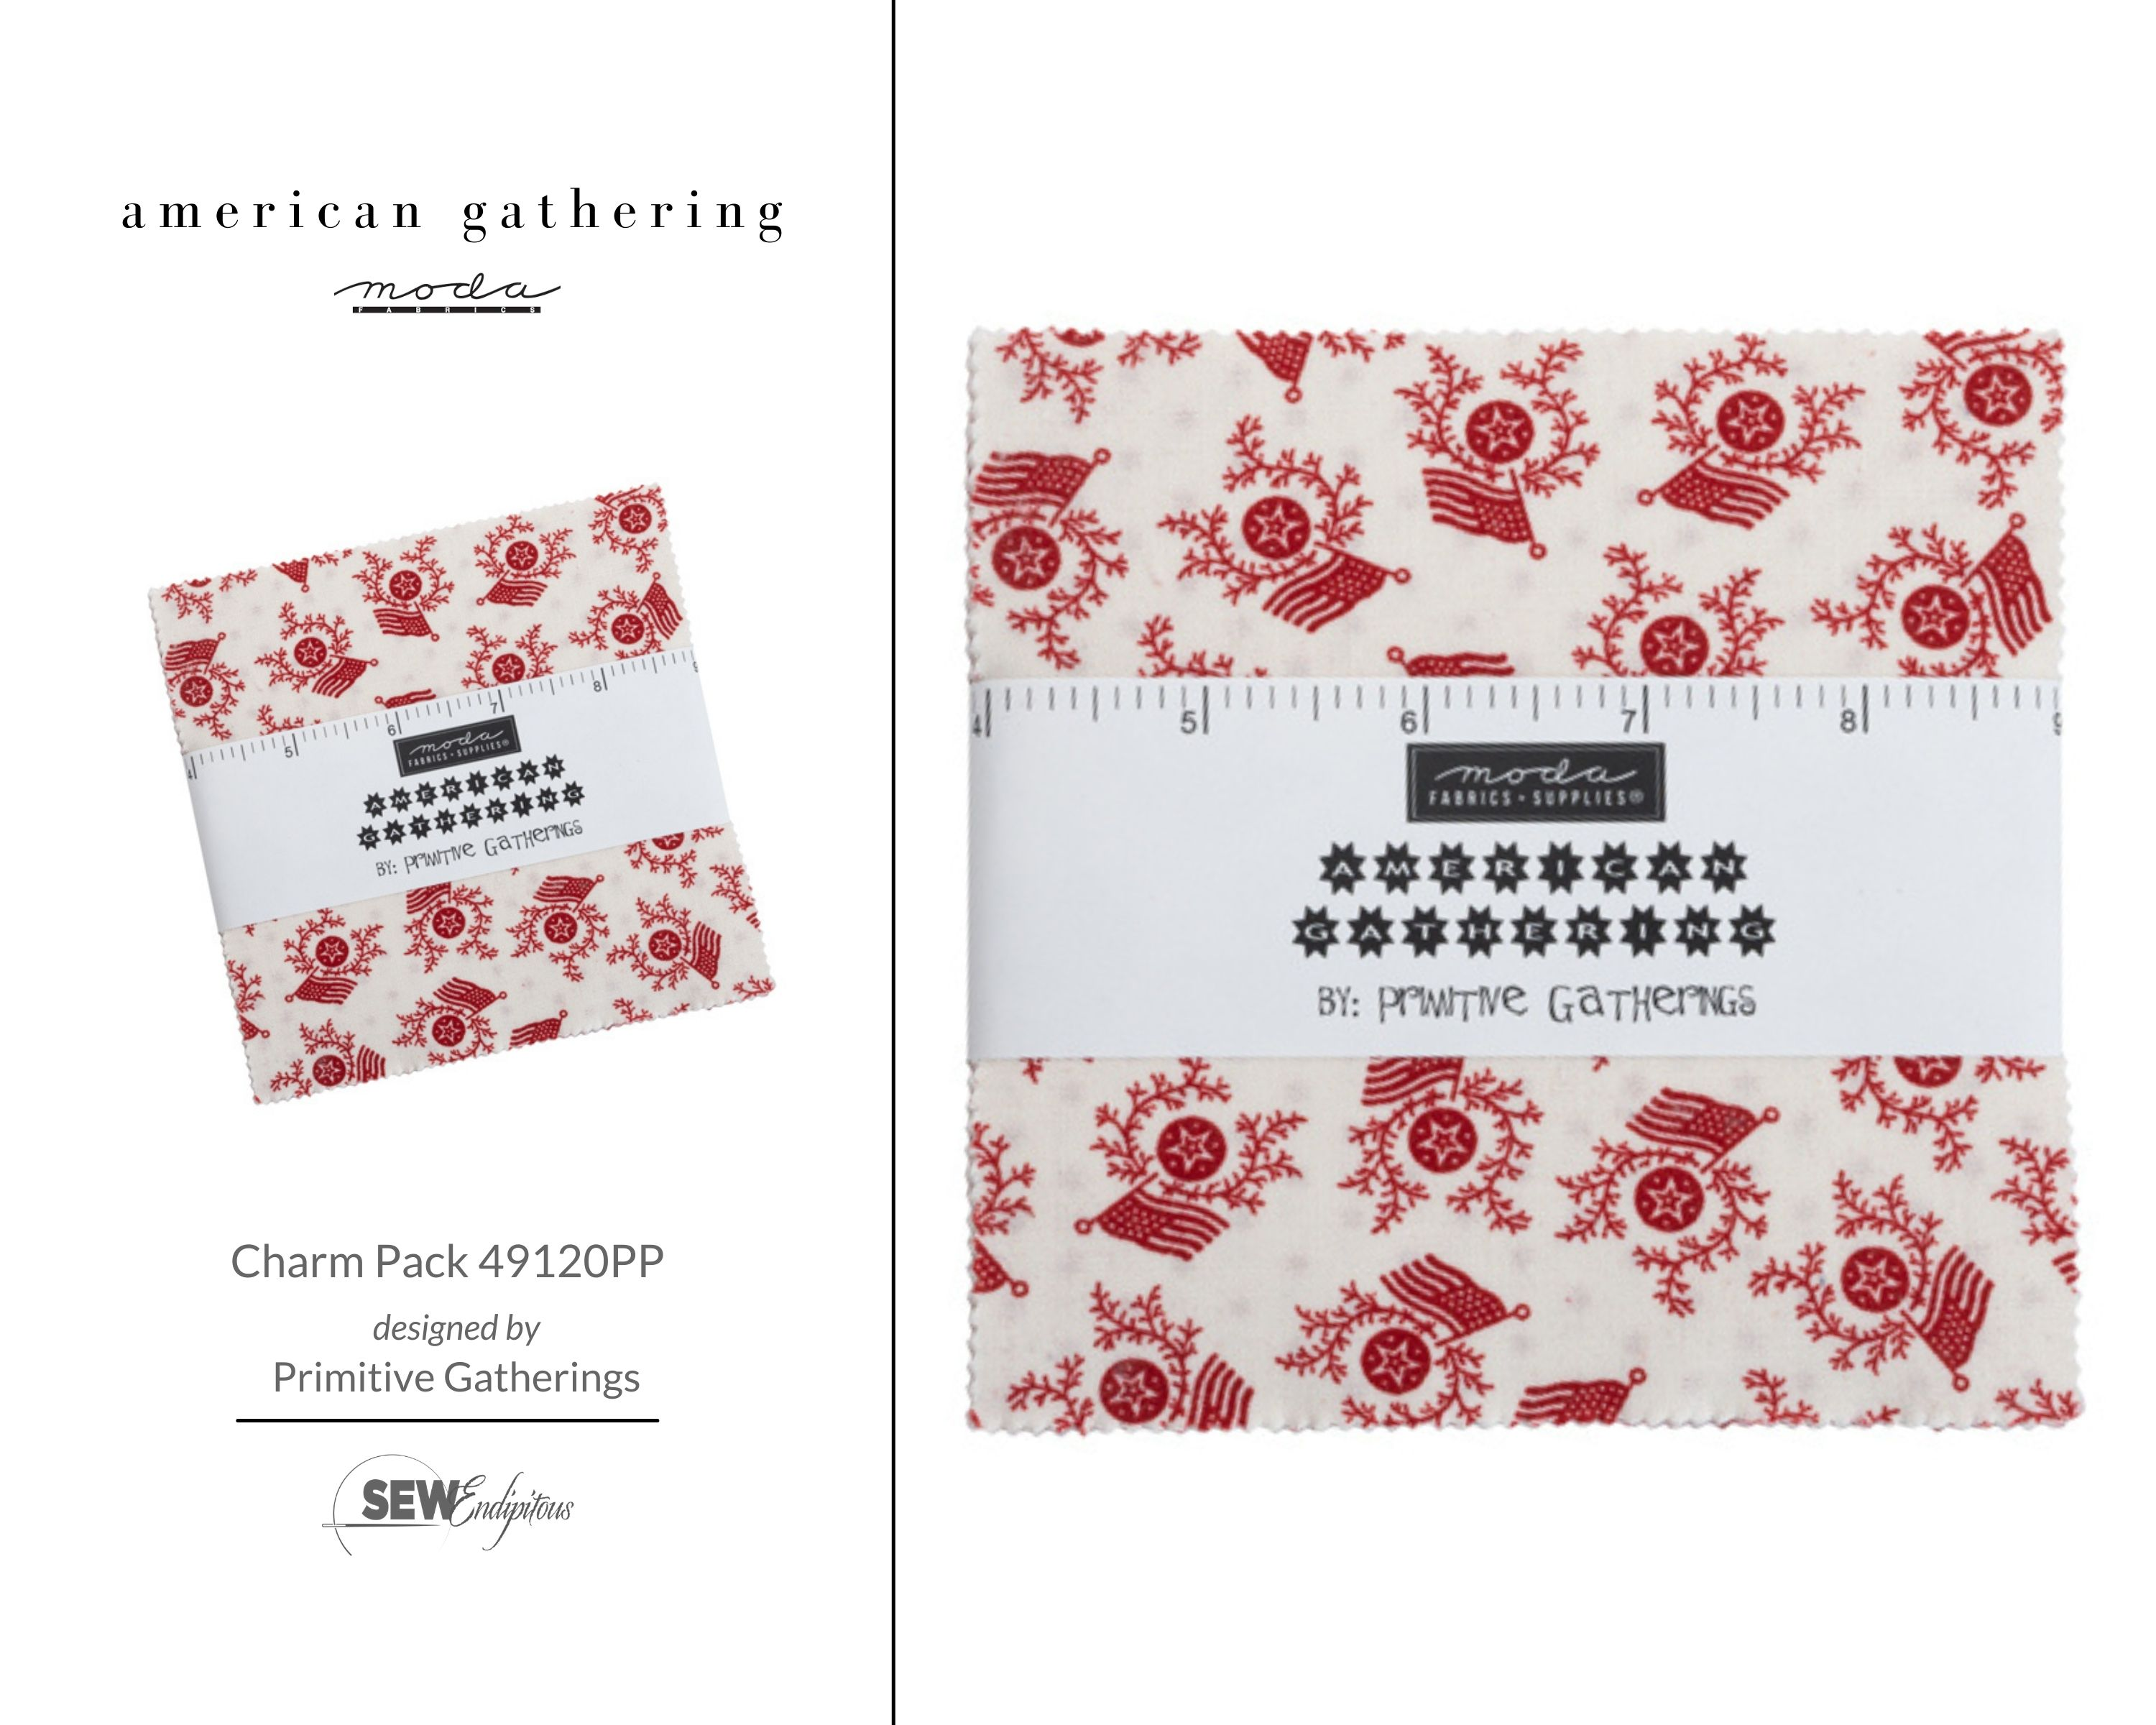 American Gathering - Charm Pack 49120PP